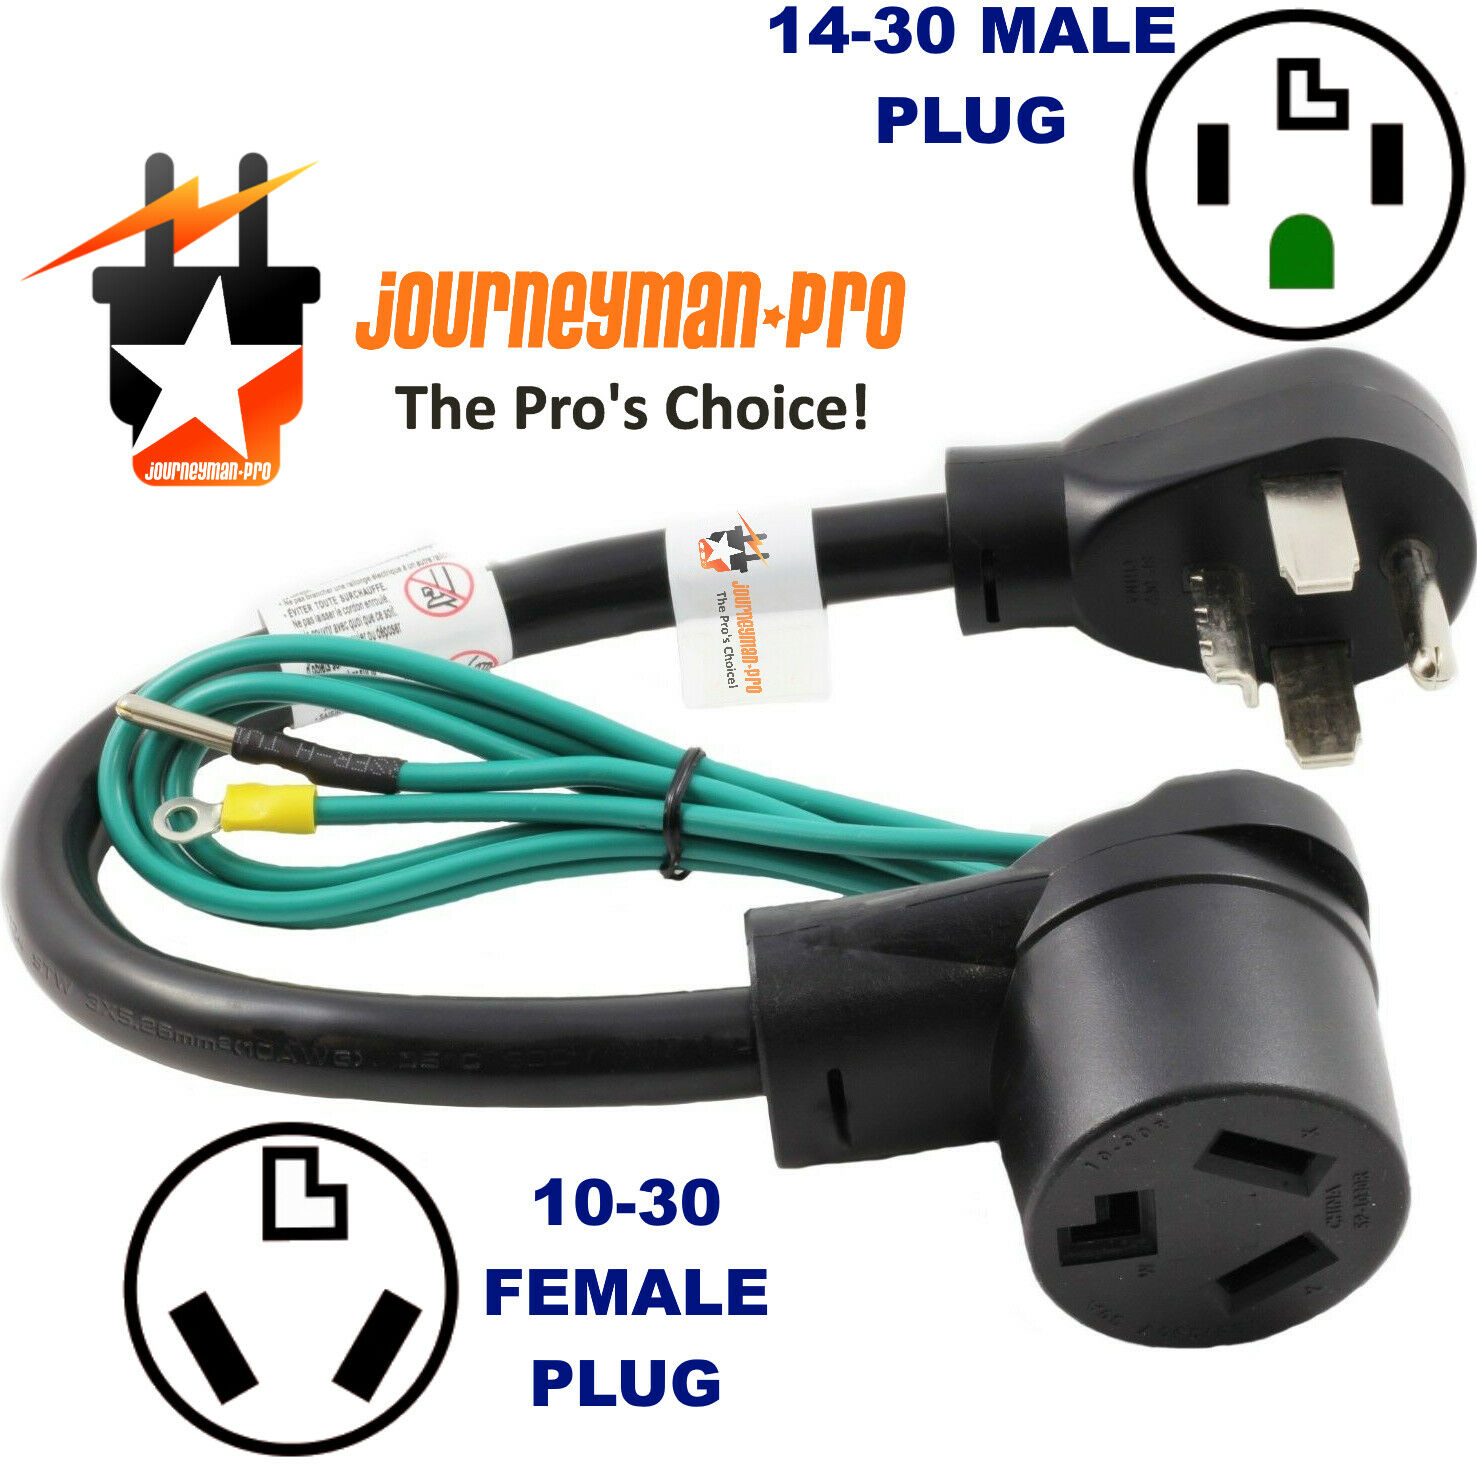 NEW MALE 14-30P 4-PRONG PLUG to OLD 10-30R 3-PIN FEMALE RECEPTACLE DRYER ADAPTER